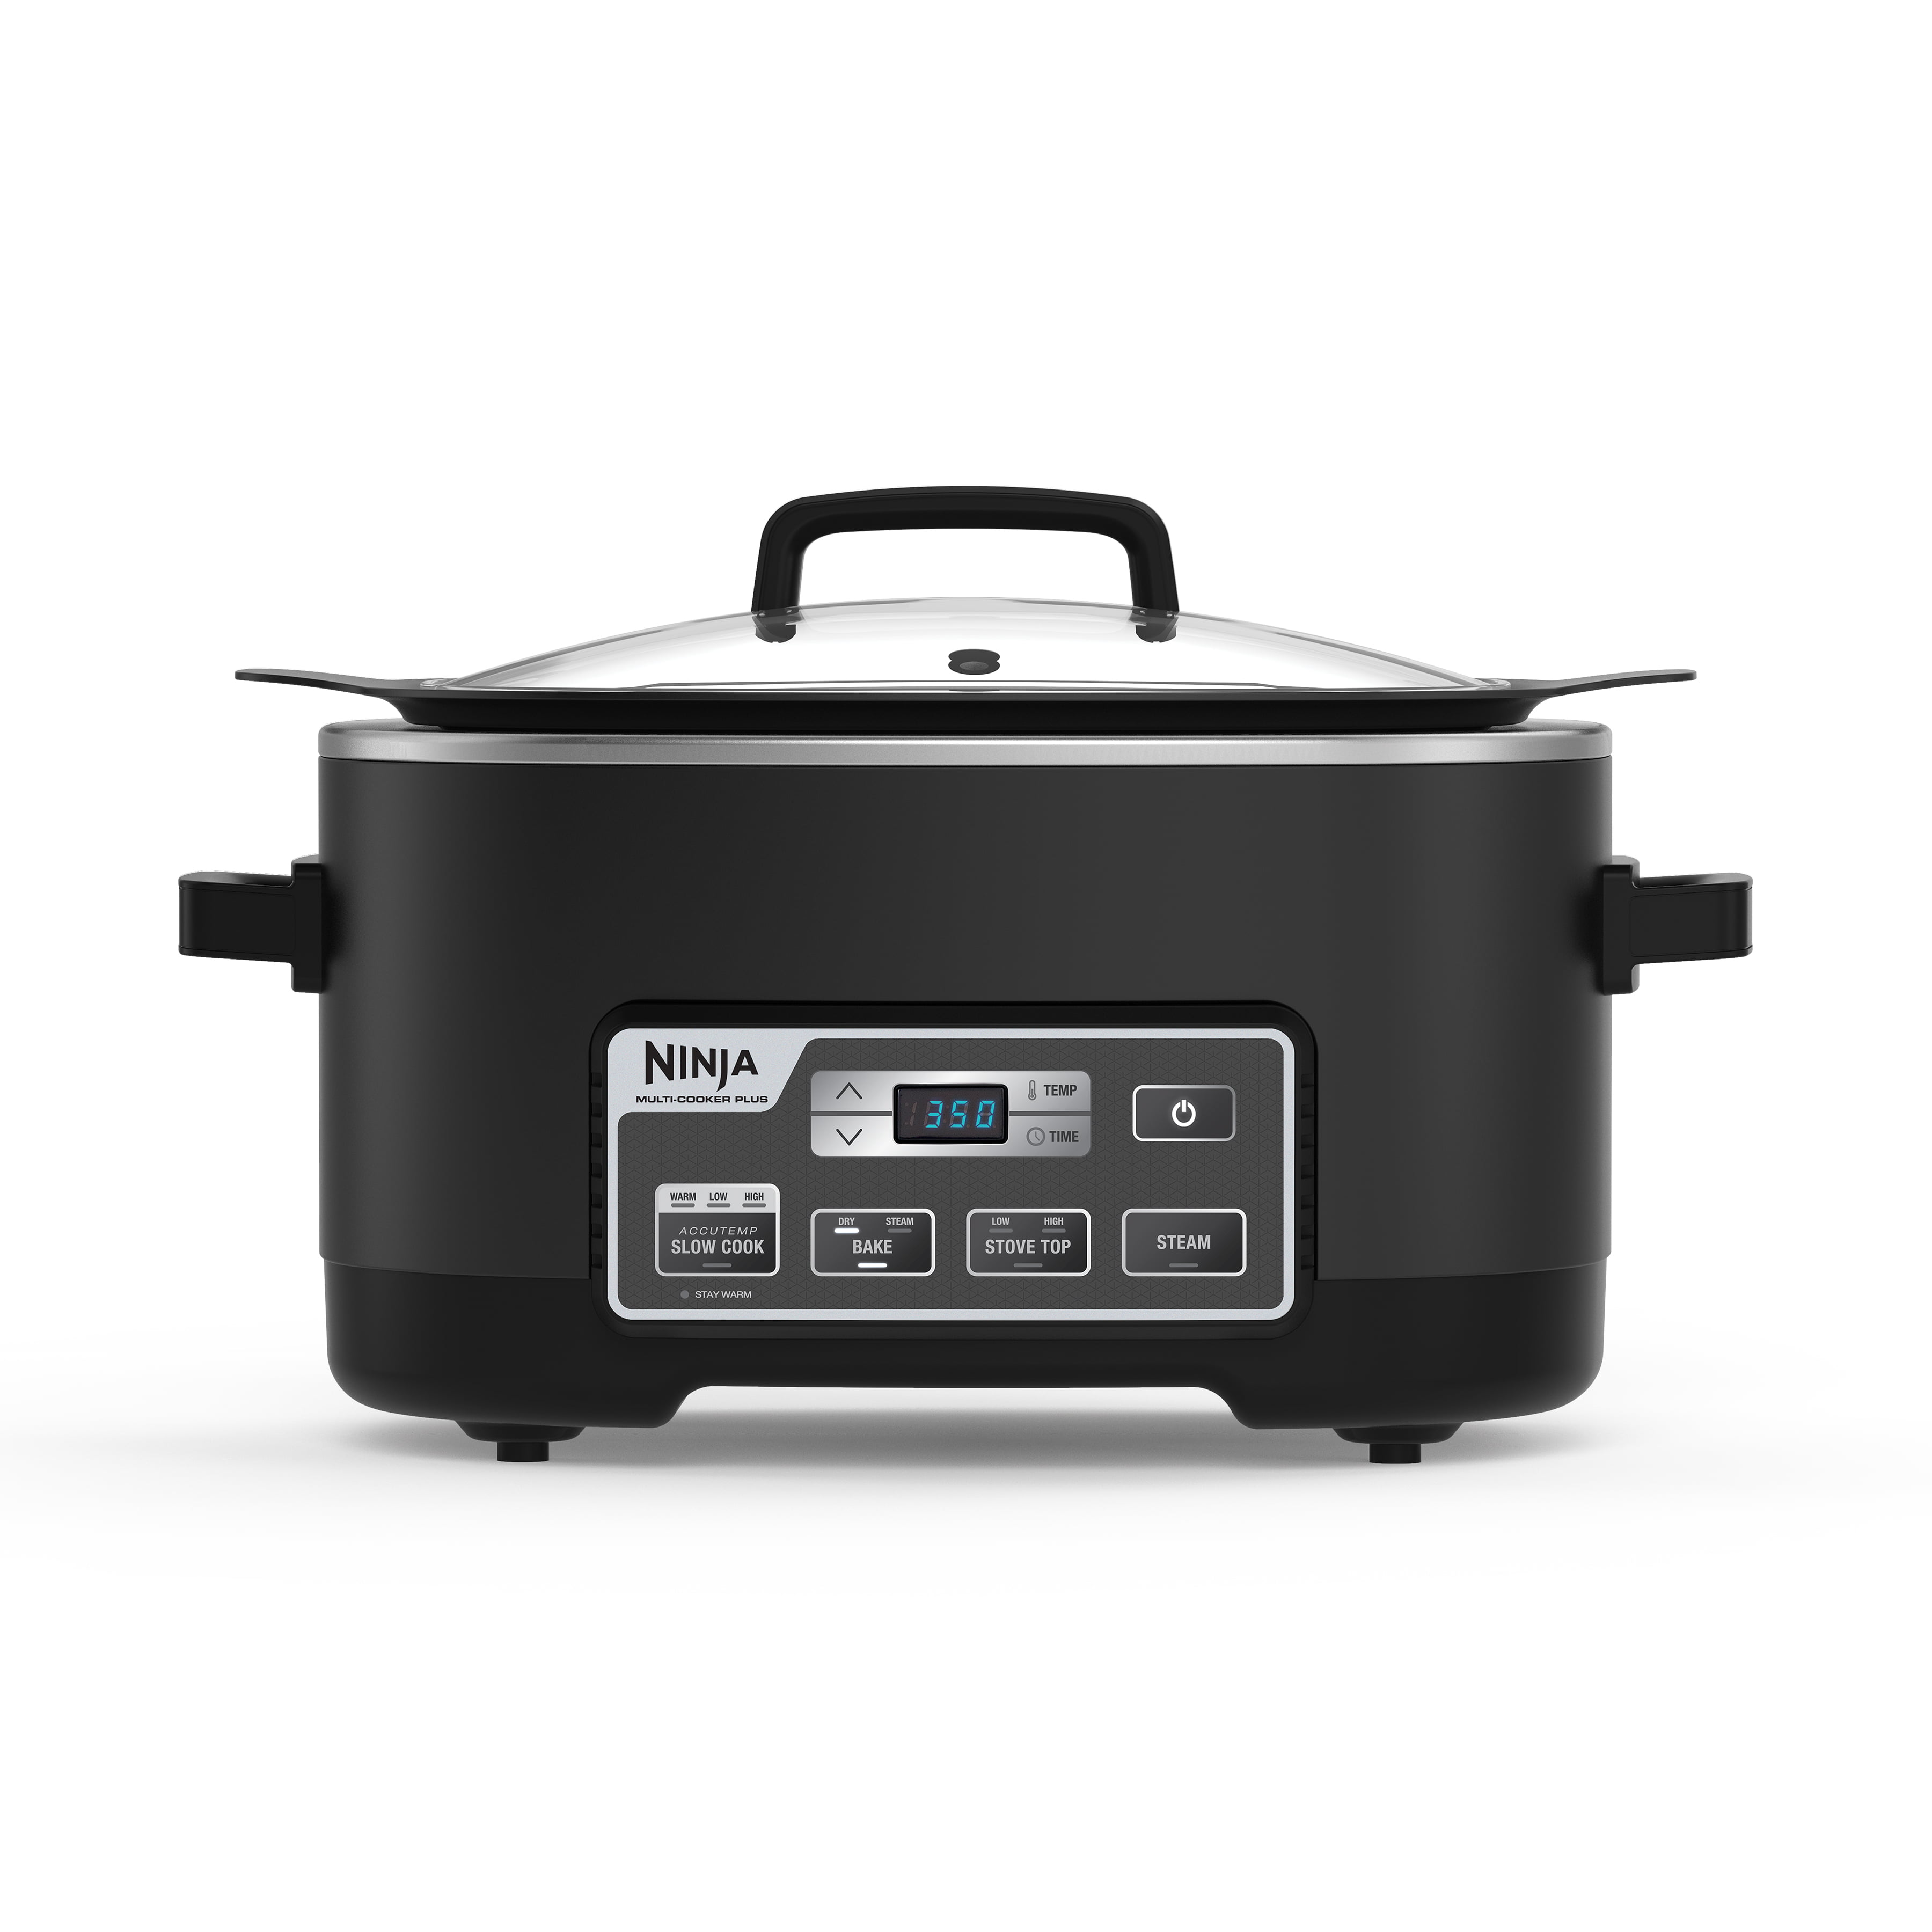 Ninja Multi Cooker Plus 4 In 1 System Slow Stove Top Oven And Steamer Mc760